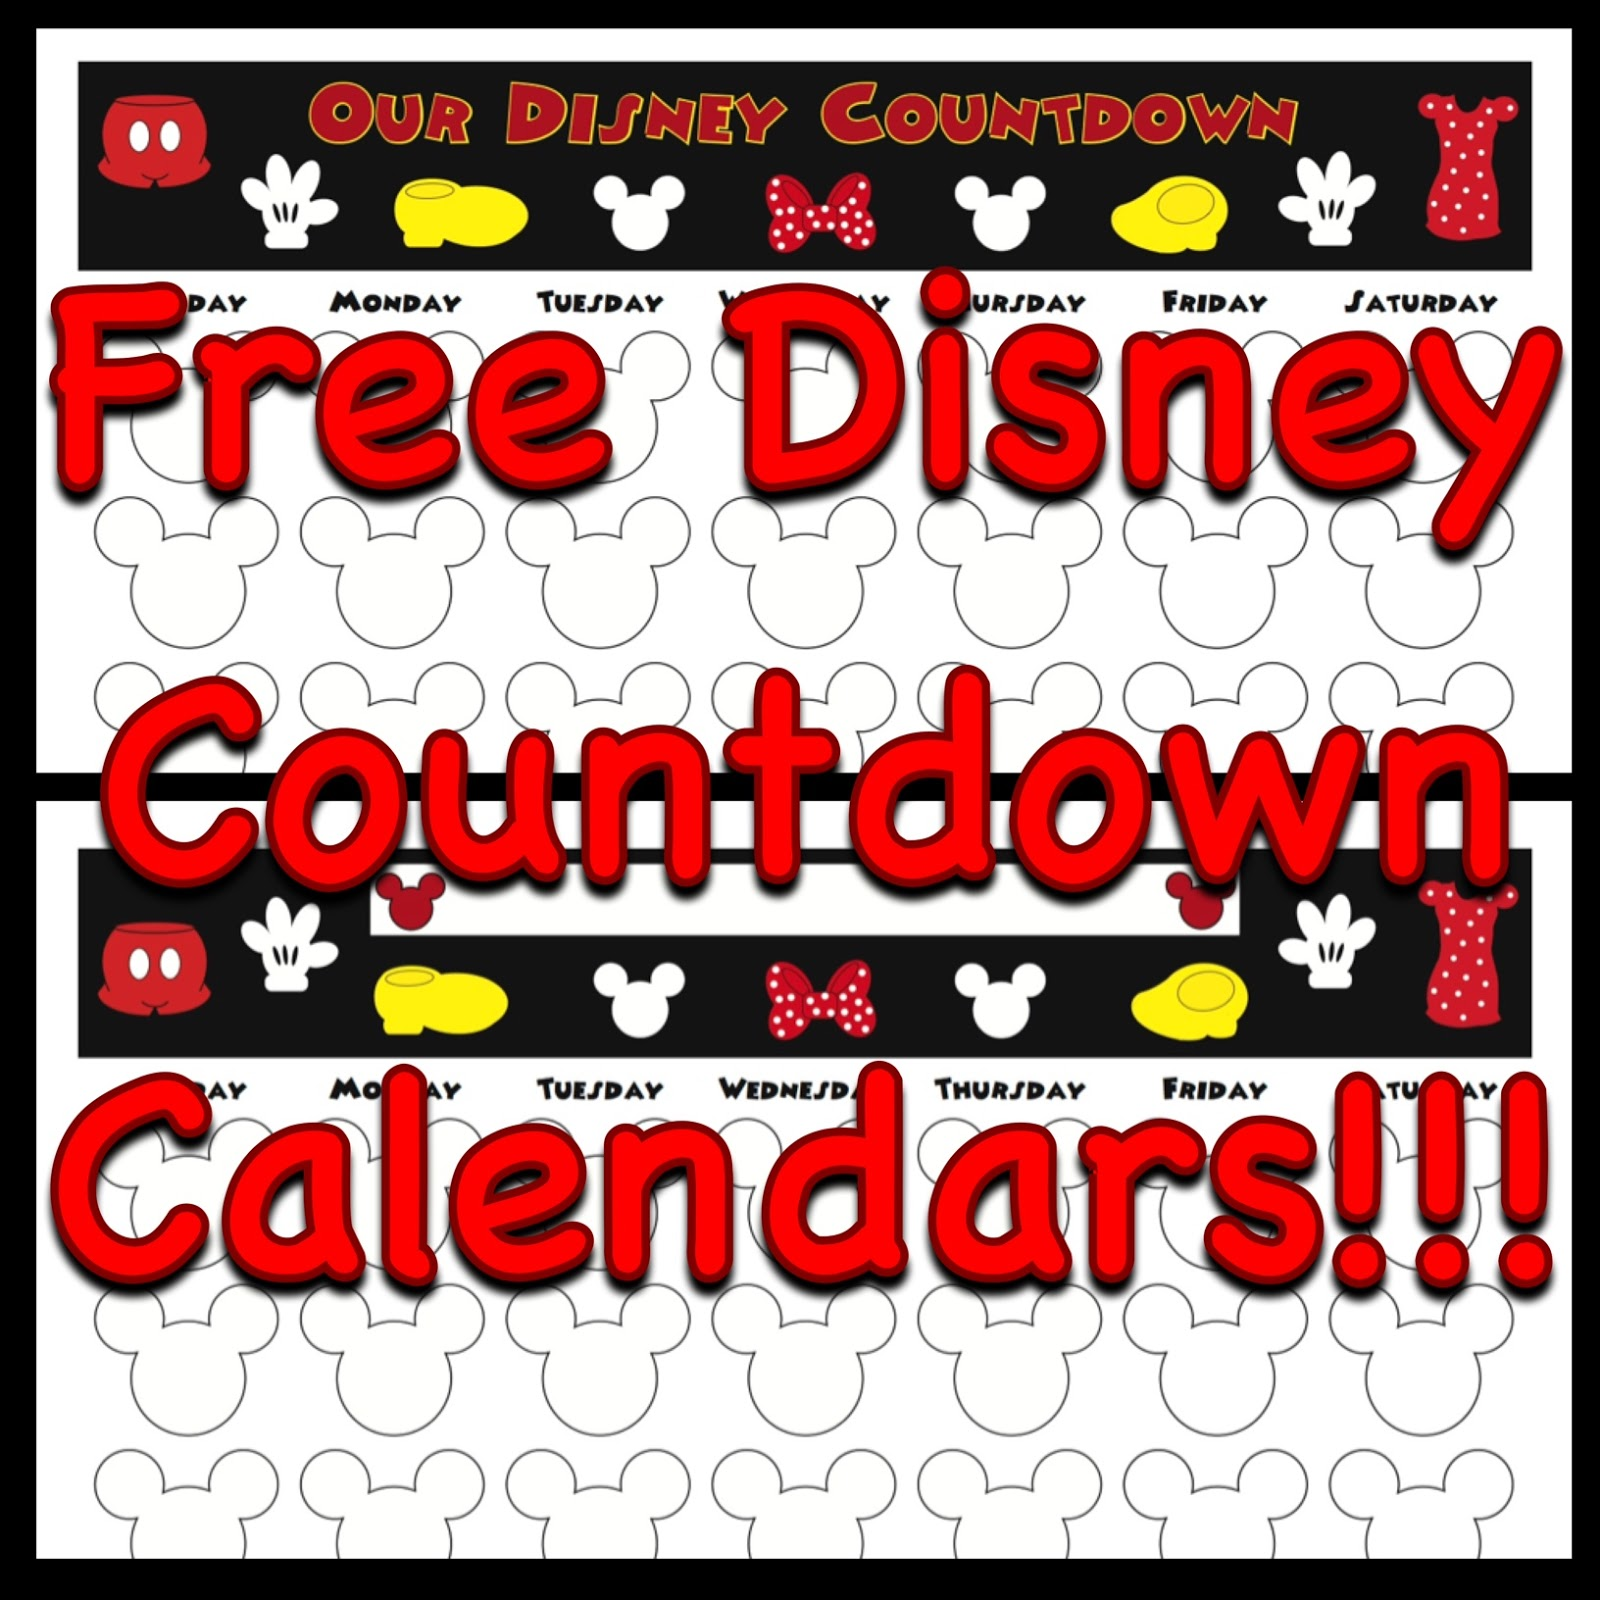 photograph about Disney Countdown Calendar Printable called My Disney Existence: Countdown Calendars